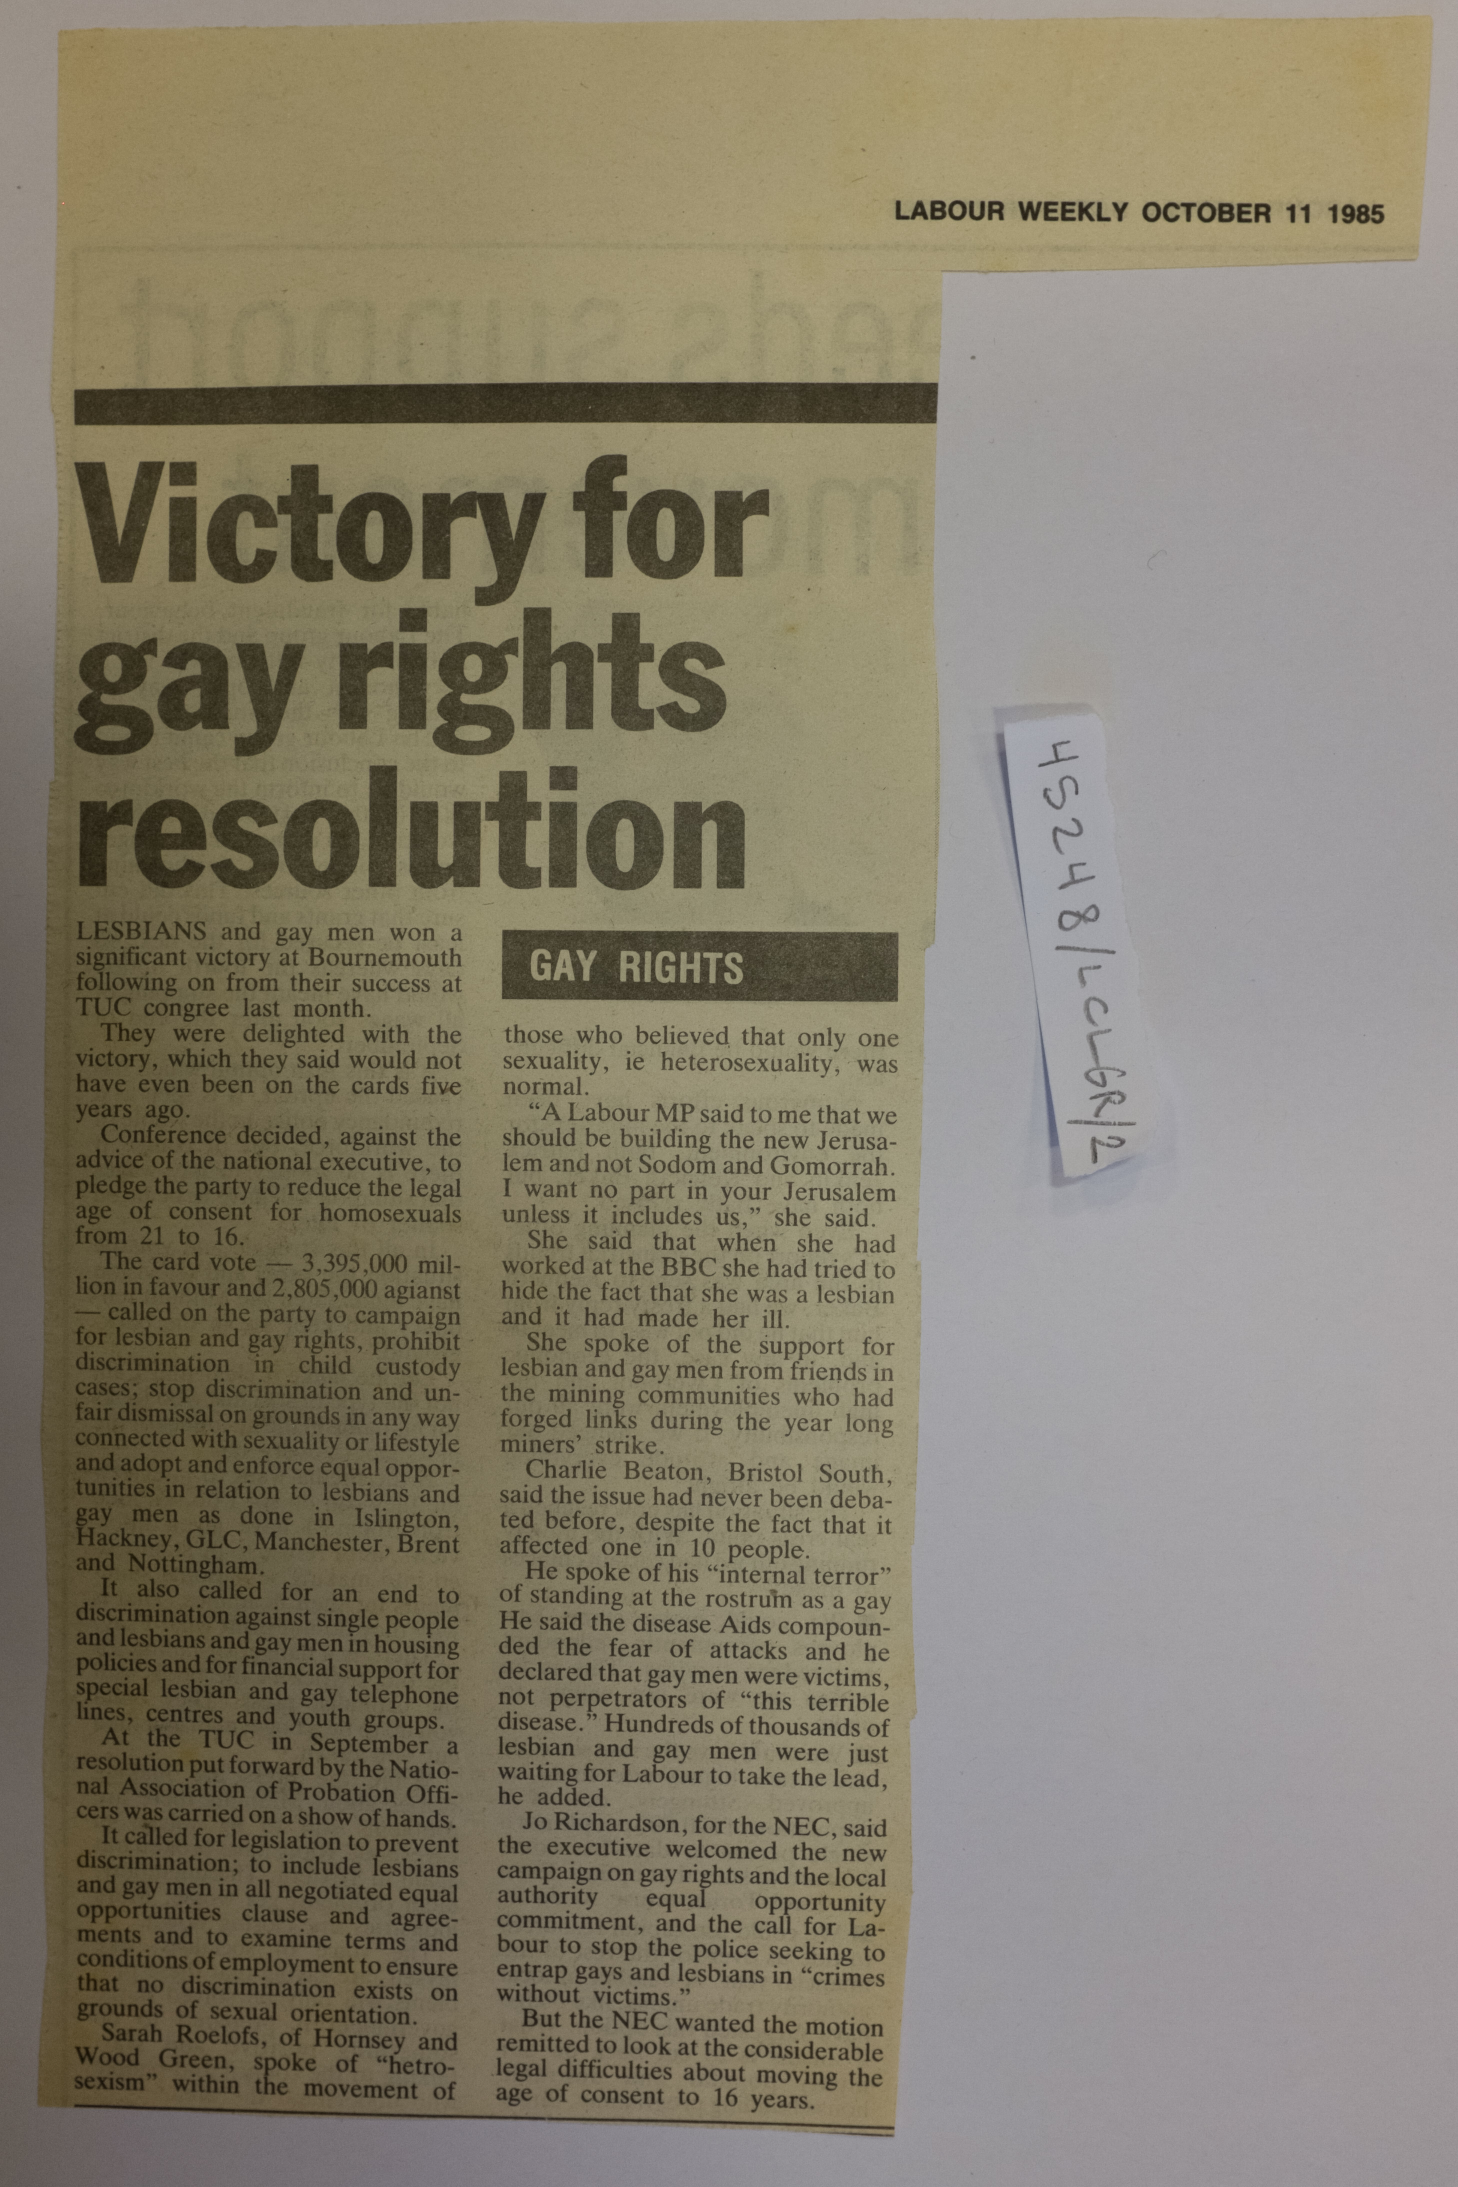 A newspaper clipping noting the success of gay campaigners, including Charlie Beaton, in getting Labour to pass an equality resolution